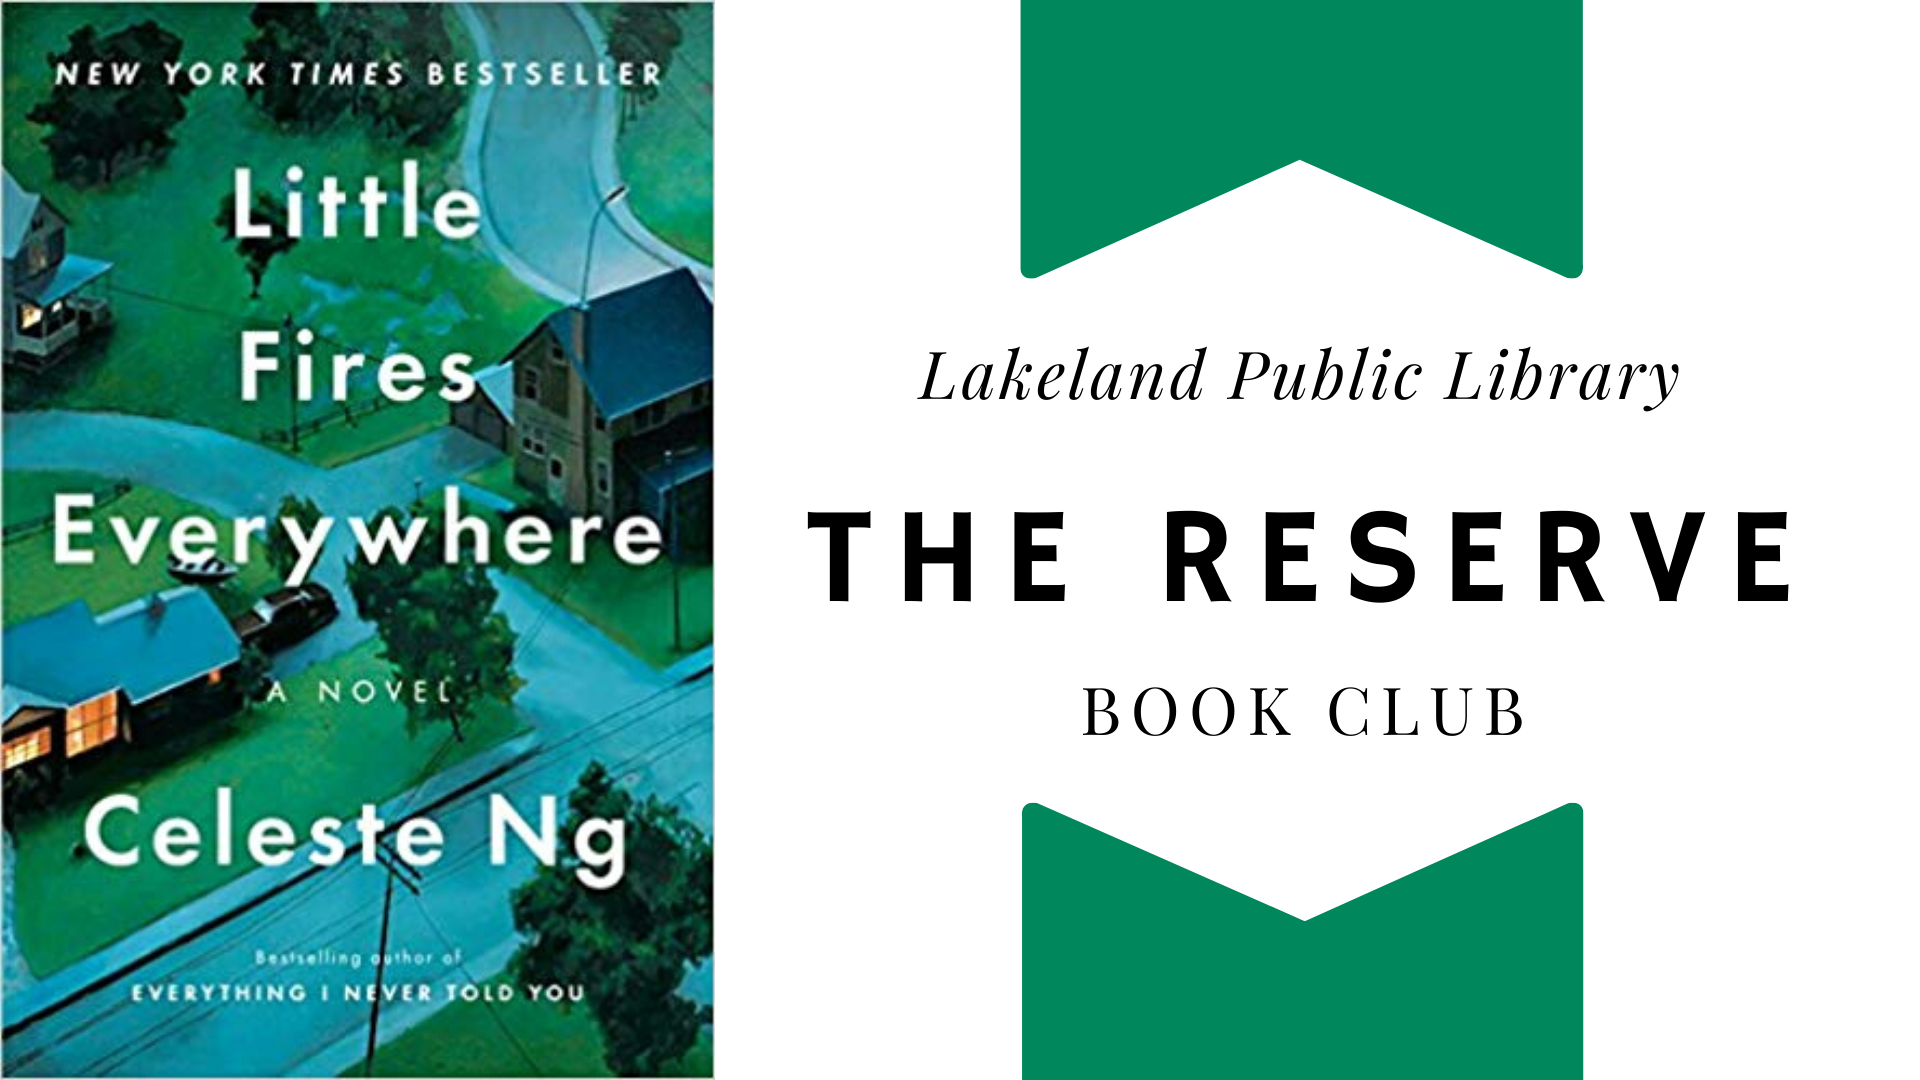 CANCELLED: The Reserve Book Club